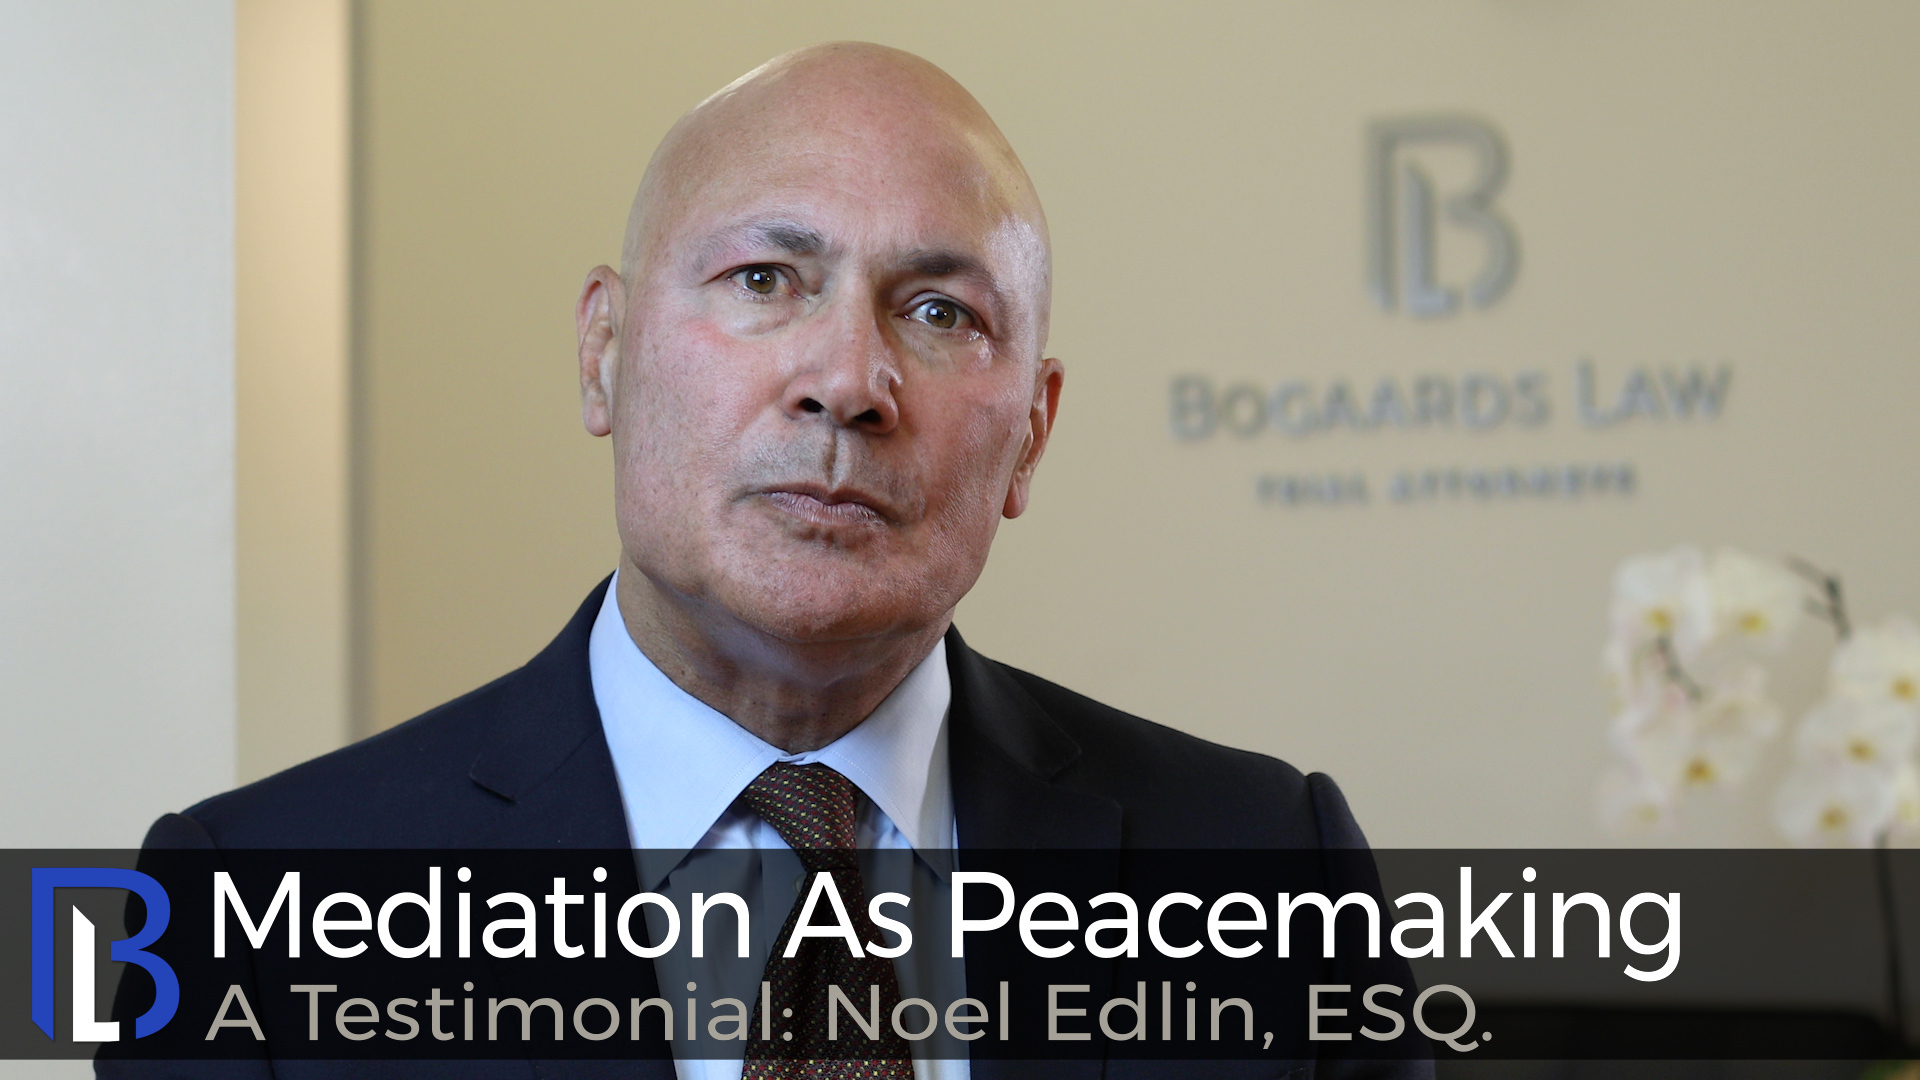 Mediation As Peacemaking--A Testimonial: Noel Edlin, ESQ